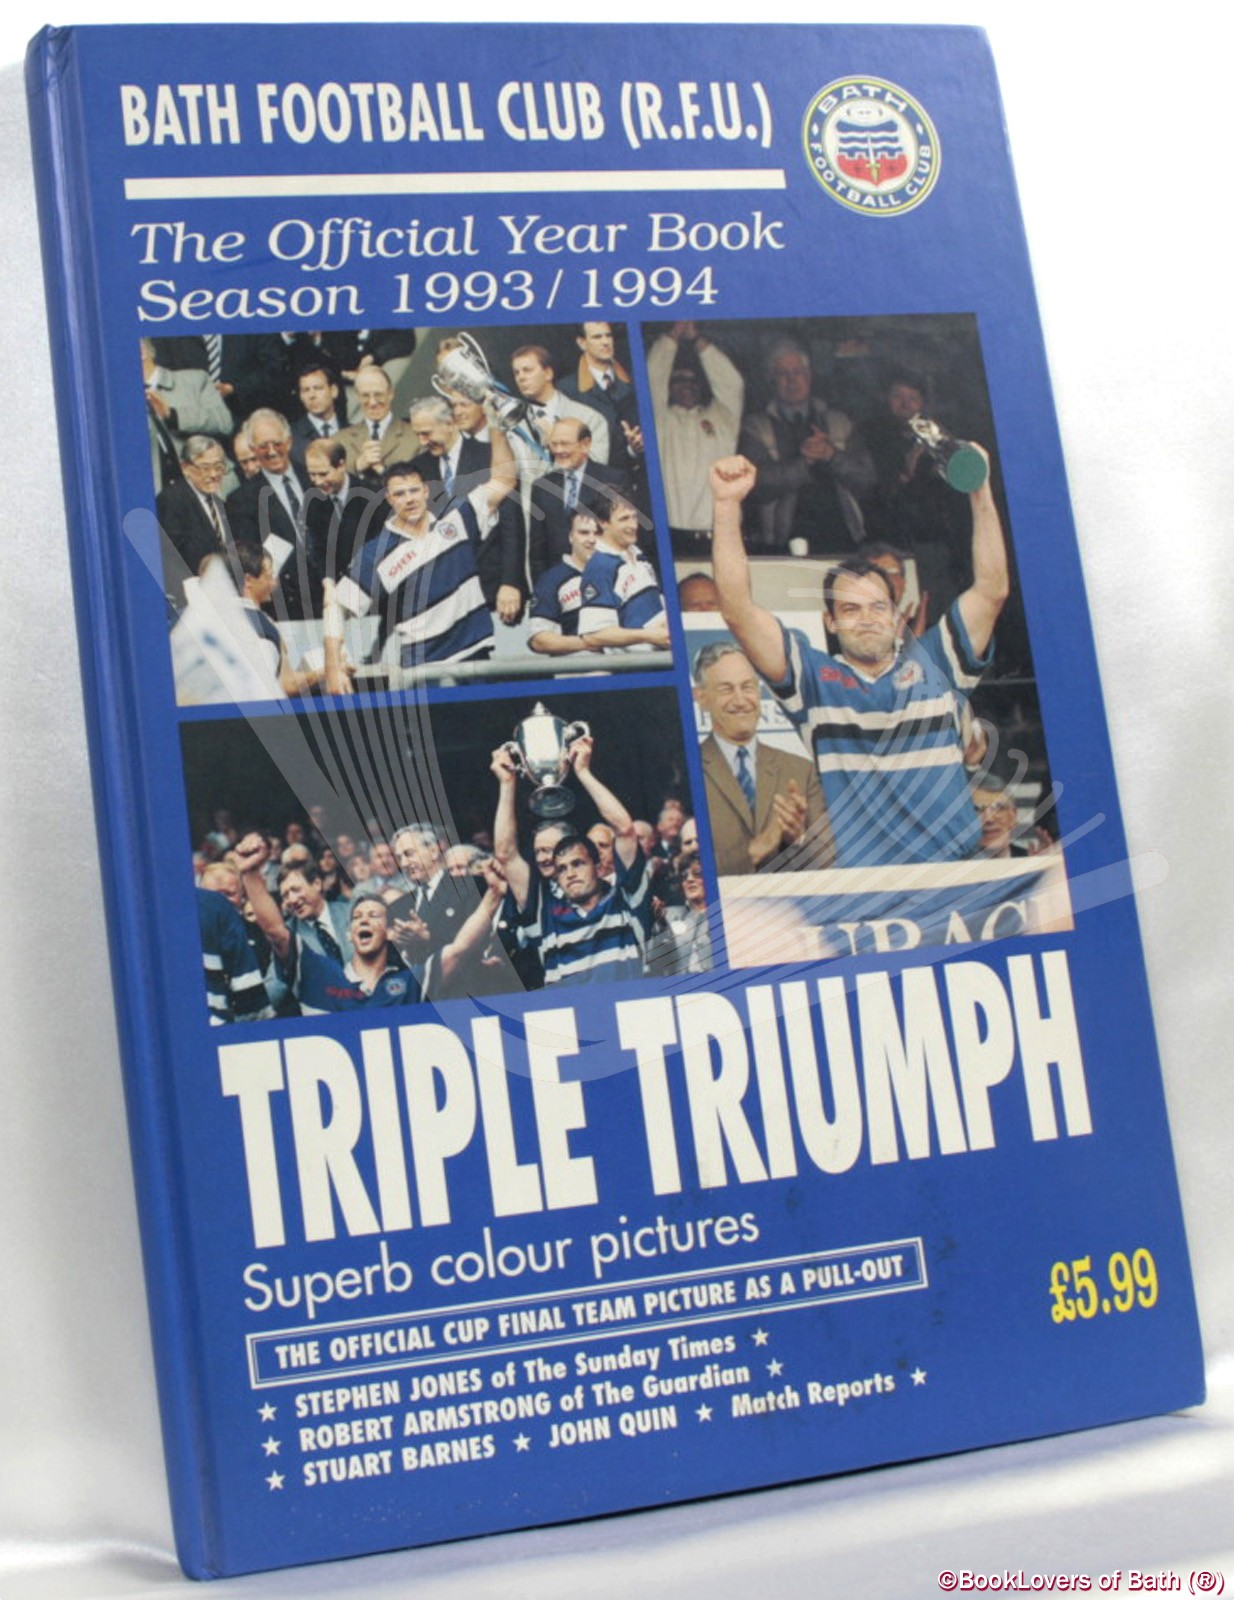 Bath Football Club (R.F.U.) Triple Triumph: The Official Year Book Season 1993 / 1994 - Edited by Ken Johnstone